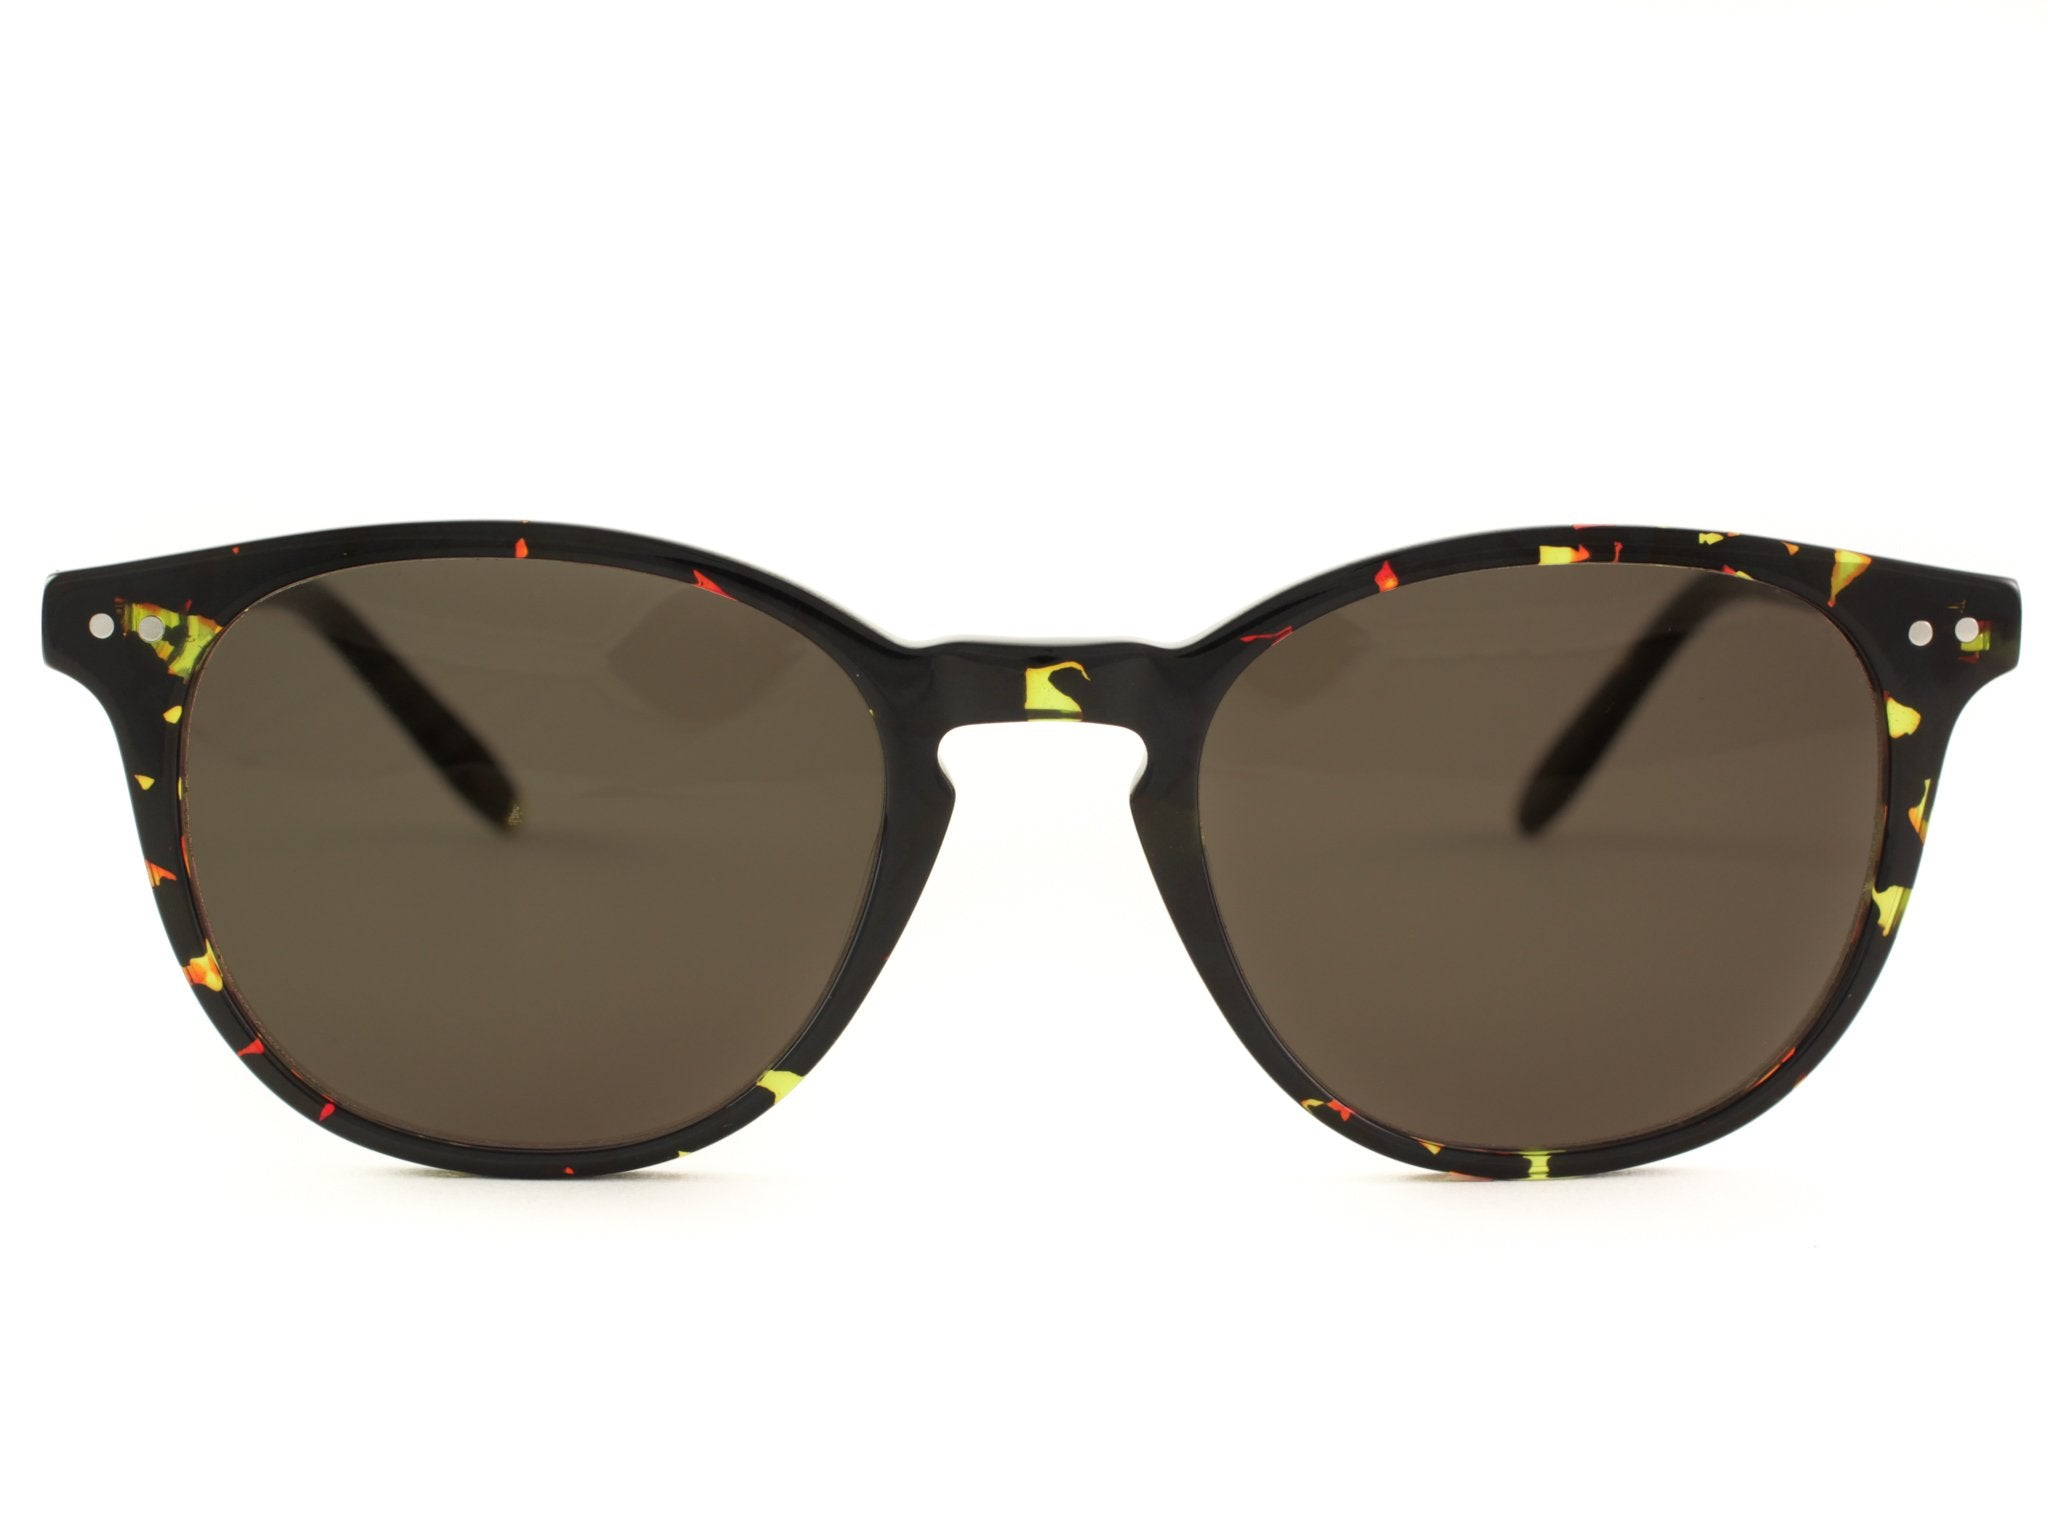 Mykonos Green Tortoise | Sunglasses